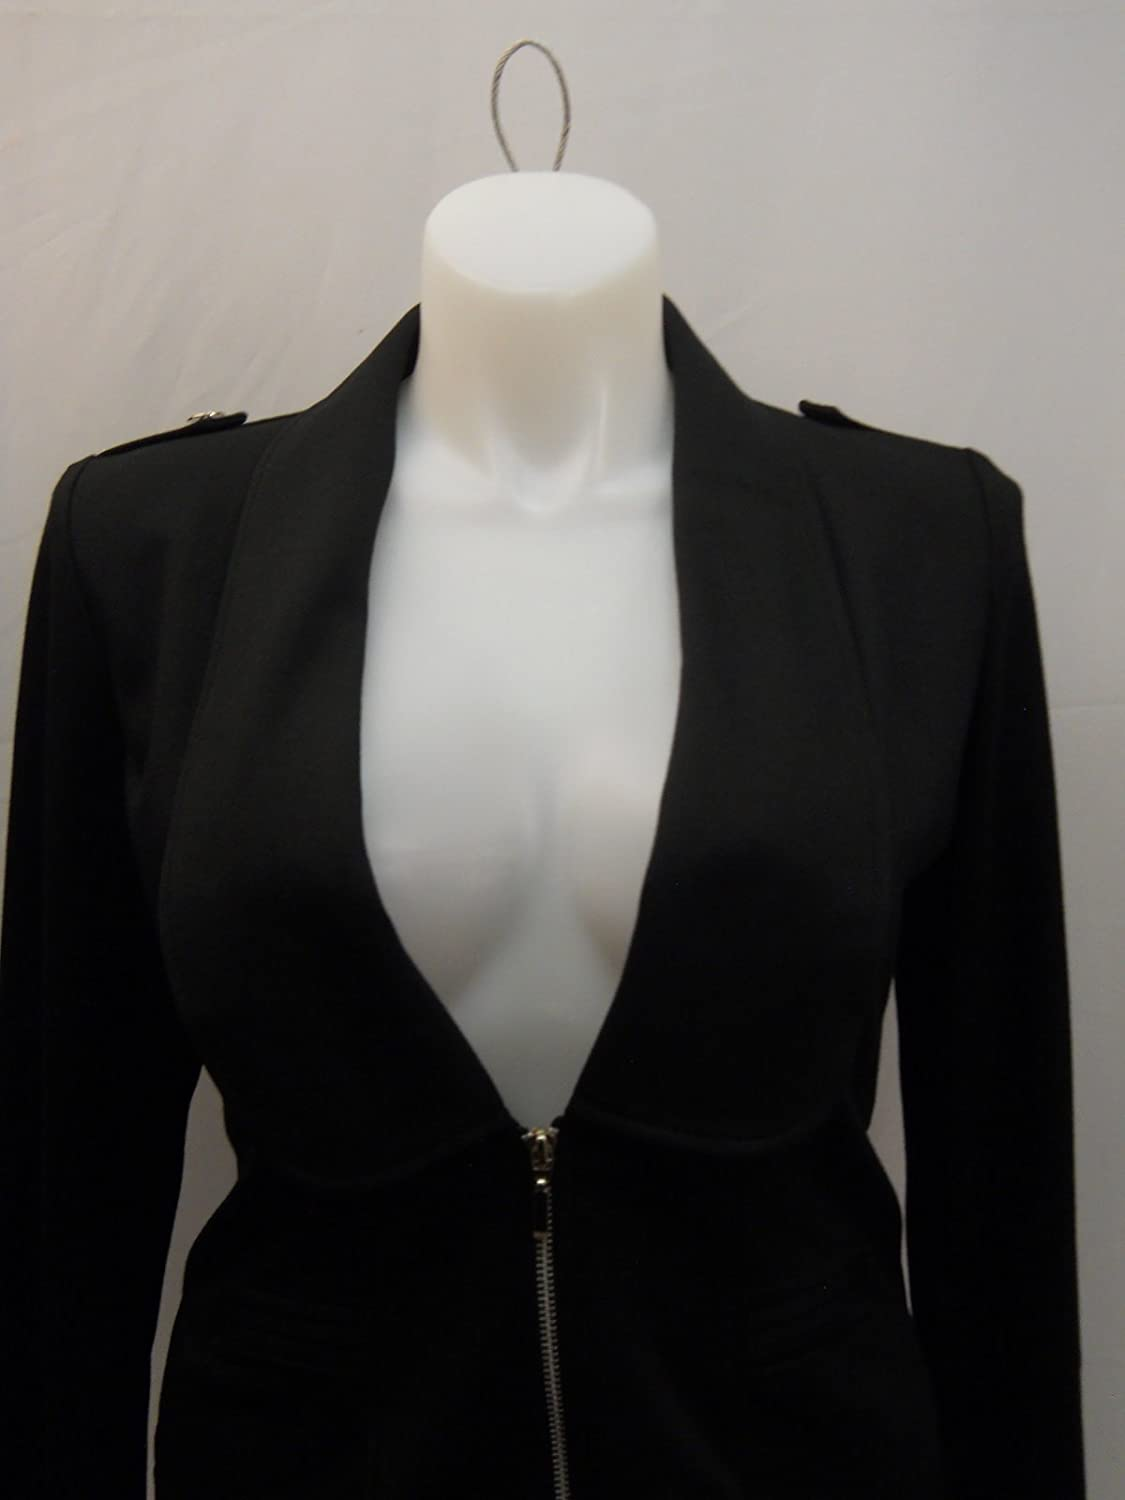 ABS Essential Women Jacket Solid Black Long Sleeve Size M Collar Neck Zip Closure